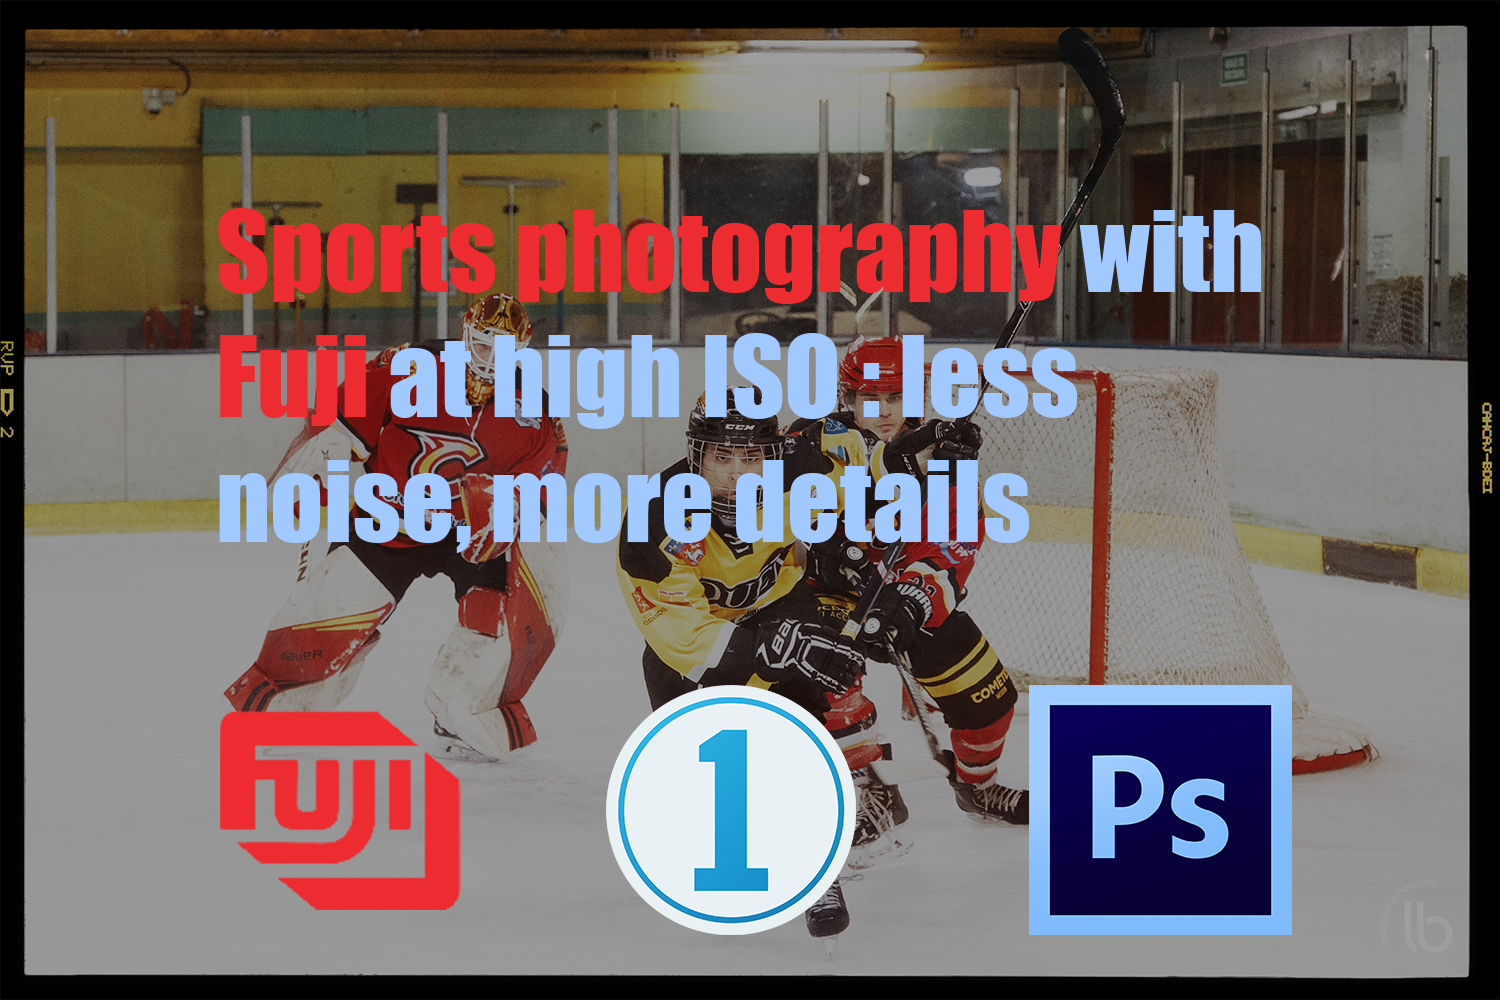 Sport Fuji Images shoot with High ISO : less noise and more details